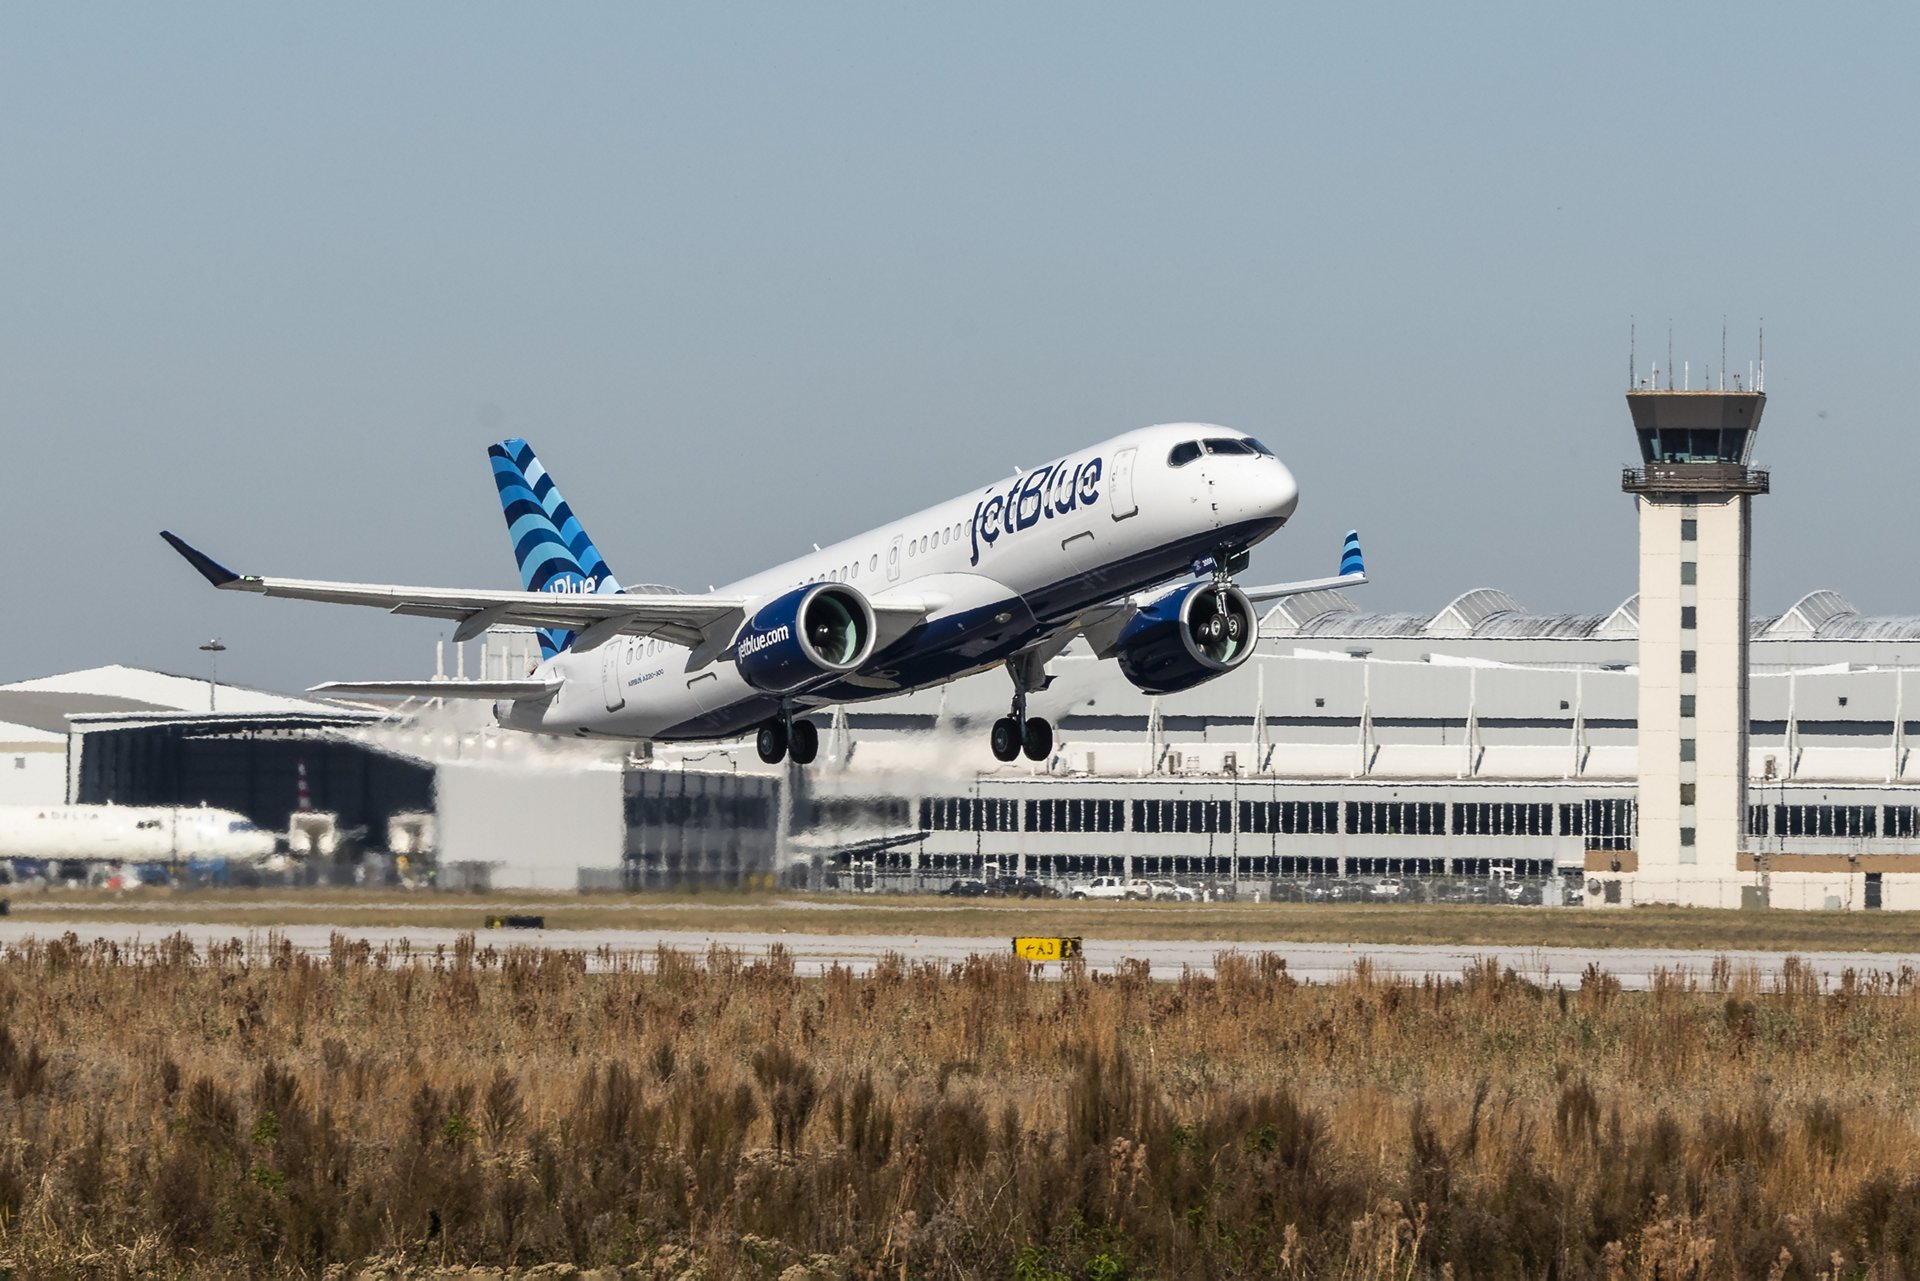 The inaugural test flight for JetBlue's first A220-300 was performed from the Mobile Aeroplex at Brookley in Mobile, Alabama, USA